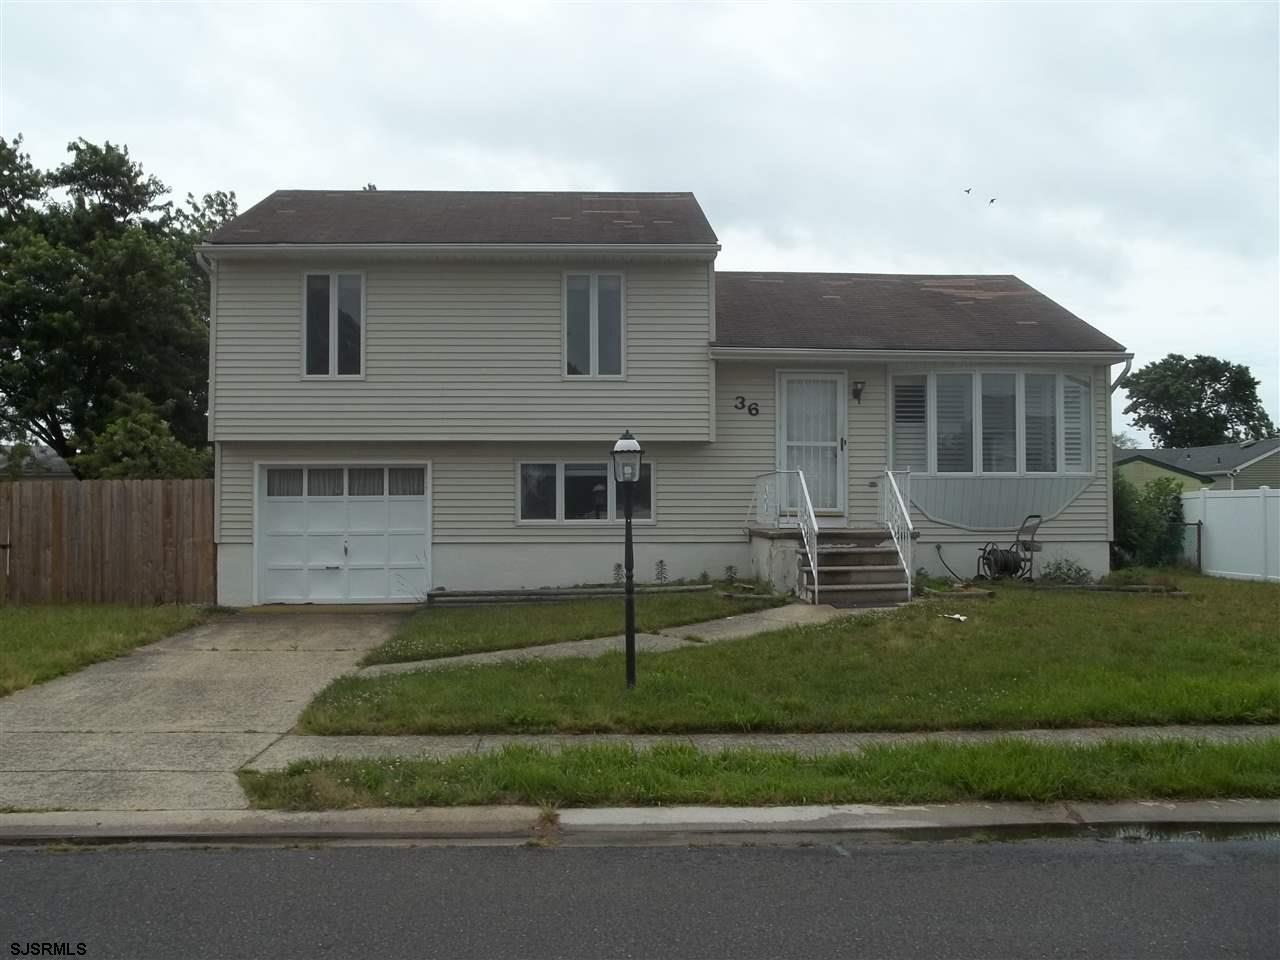 36 Bucknell Road, Somers Point, NJ 08244